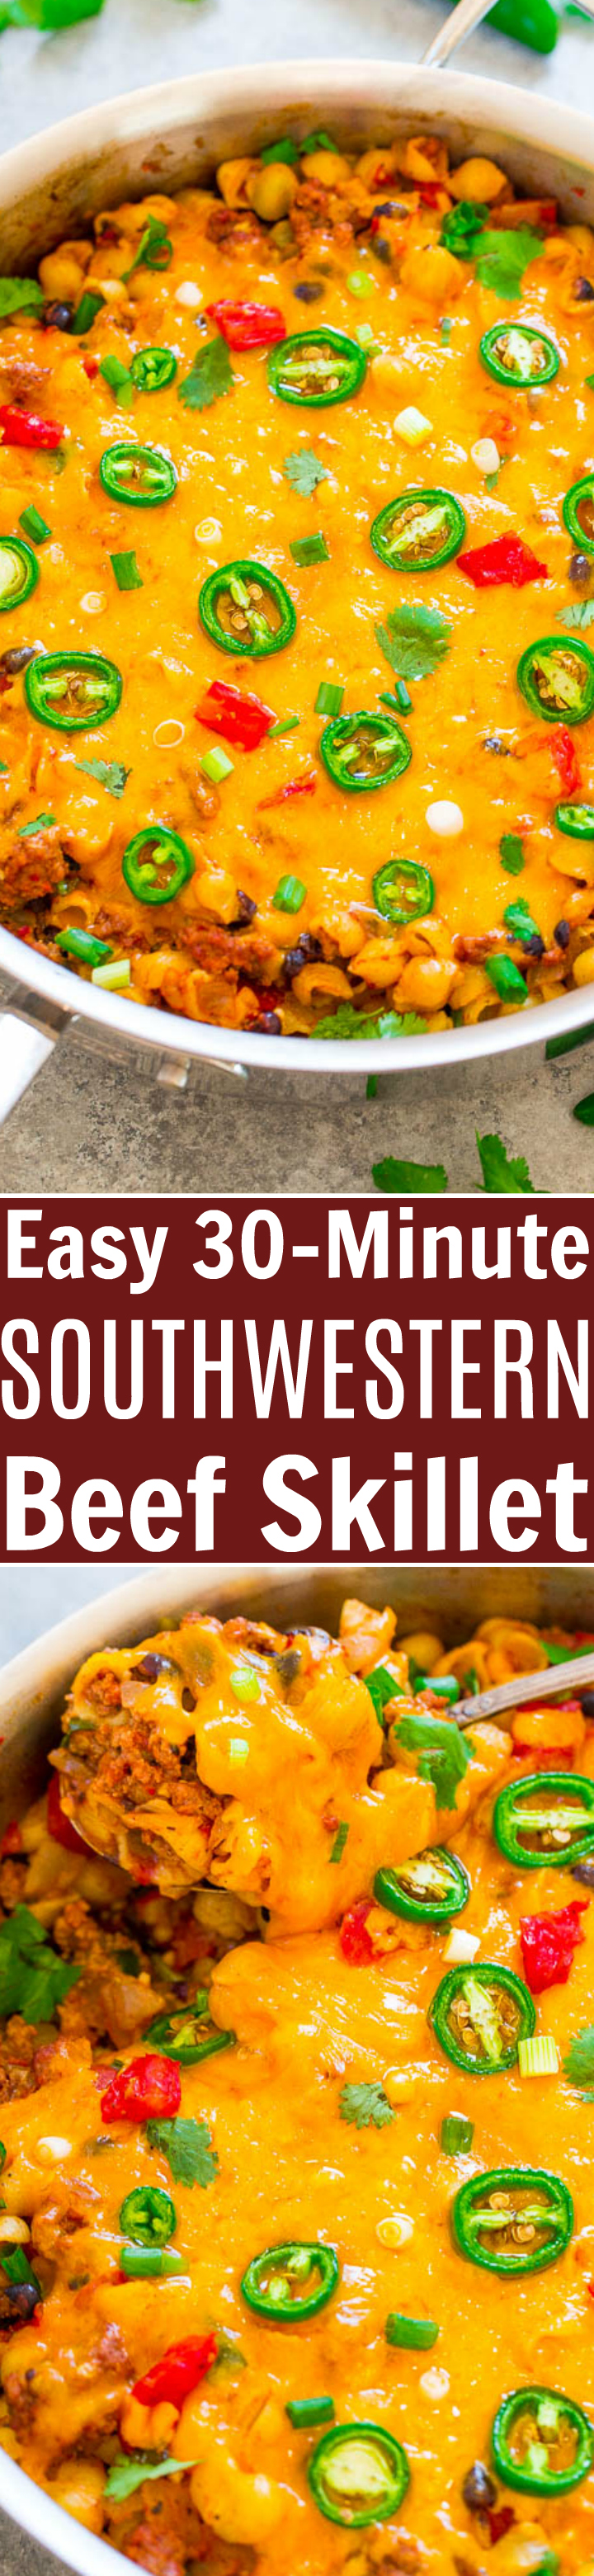 Easy 30-Minute Southwestern Beef Skillet - EASY, family friendly, ready in 30 minutes, and COMFORT FOOD at its best!! Ground beef, PASTA, black beans, tomatoes, taco seasoning, and CHEESE for a Southwestern flair!!